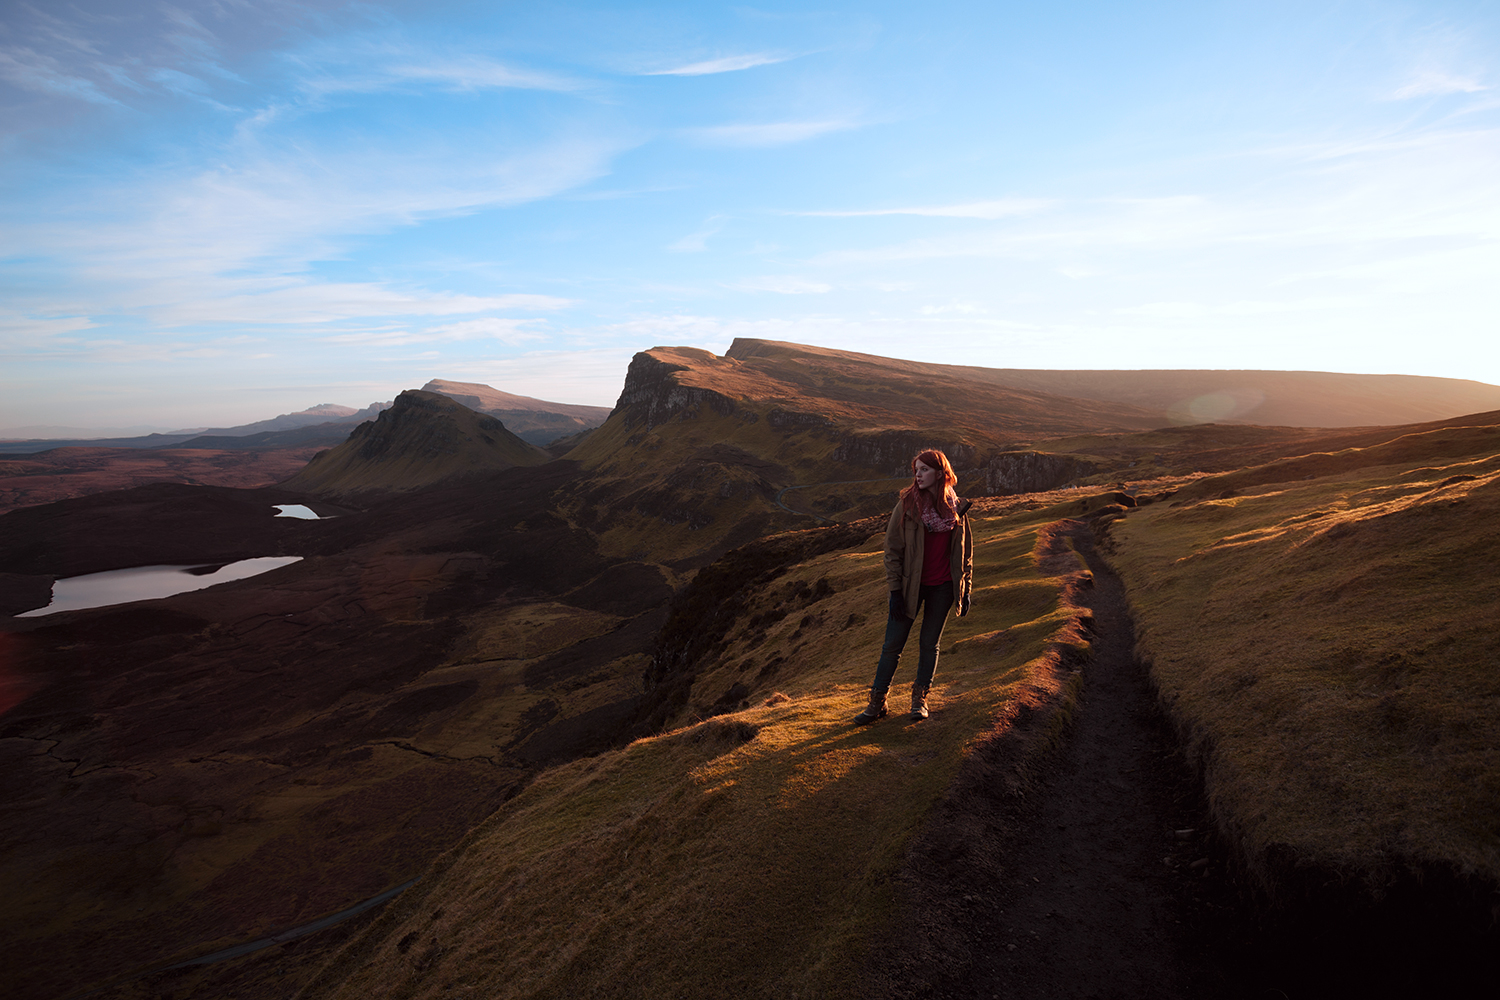 Shannon on the Quiraing, on the Isle of Skye, Scotland